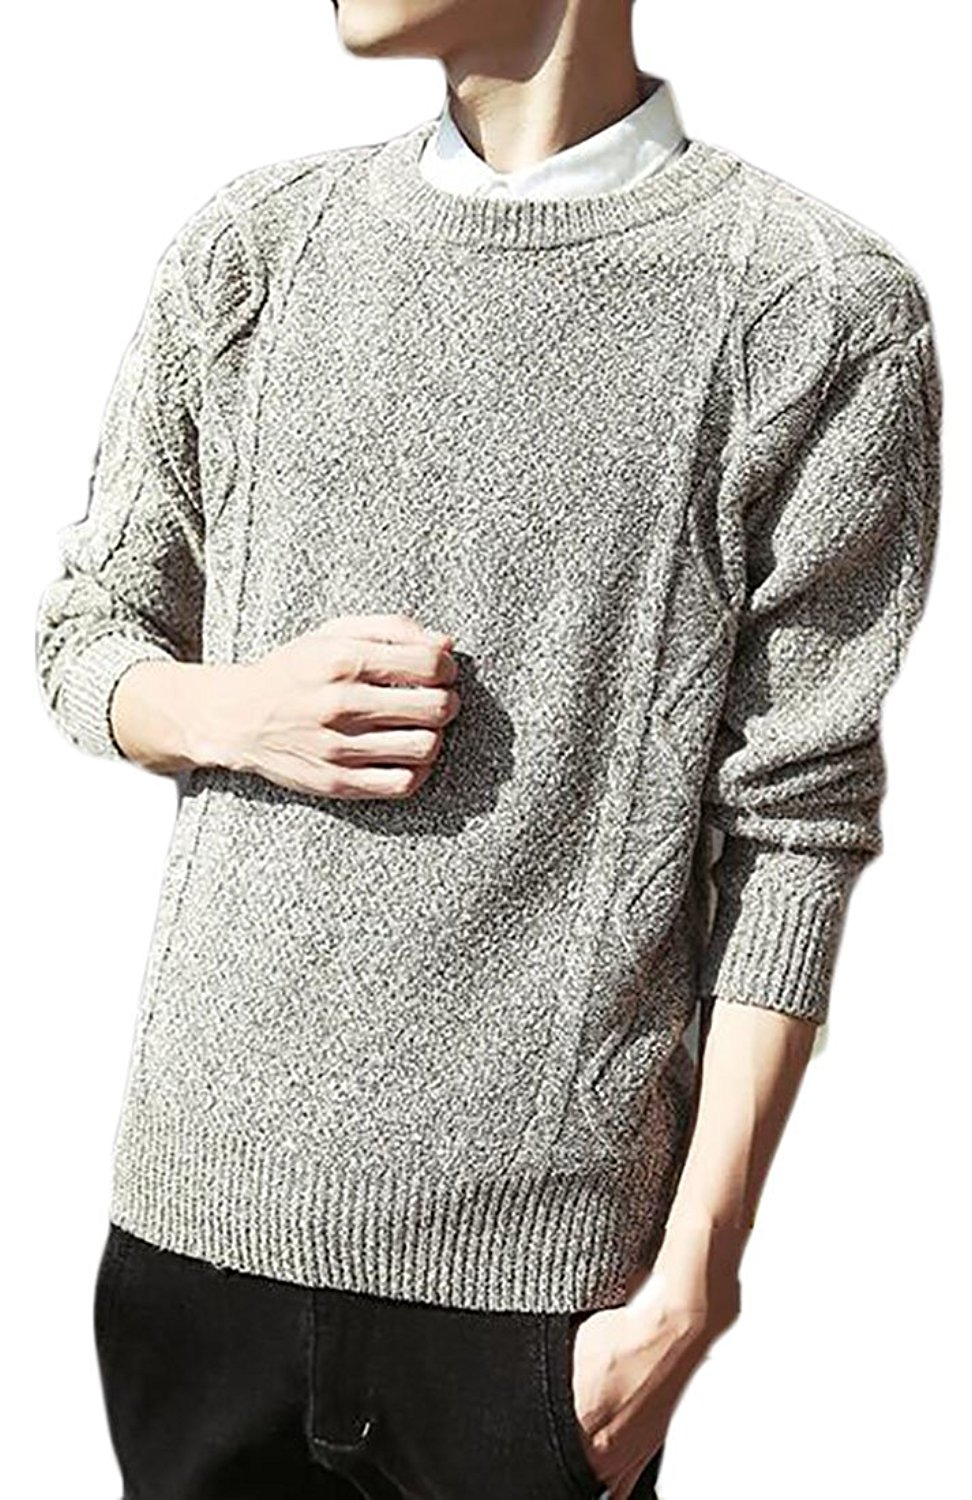 af60f0d30ed Get Quotations · XQS Mens Crewneck Cable Knit Shawl Collar Pullover Sweater  Creamy White